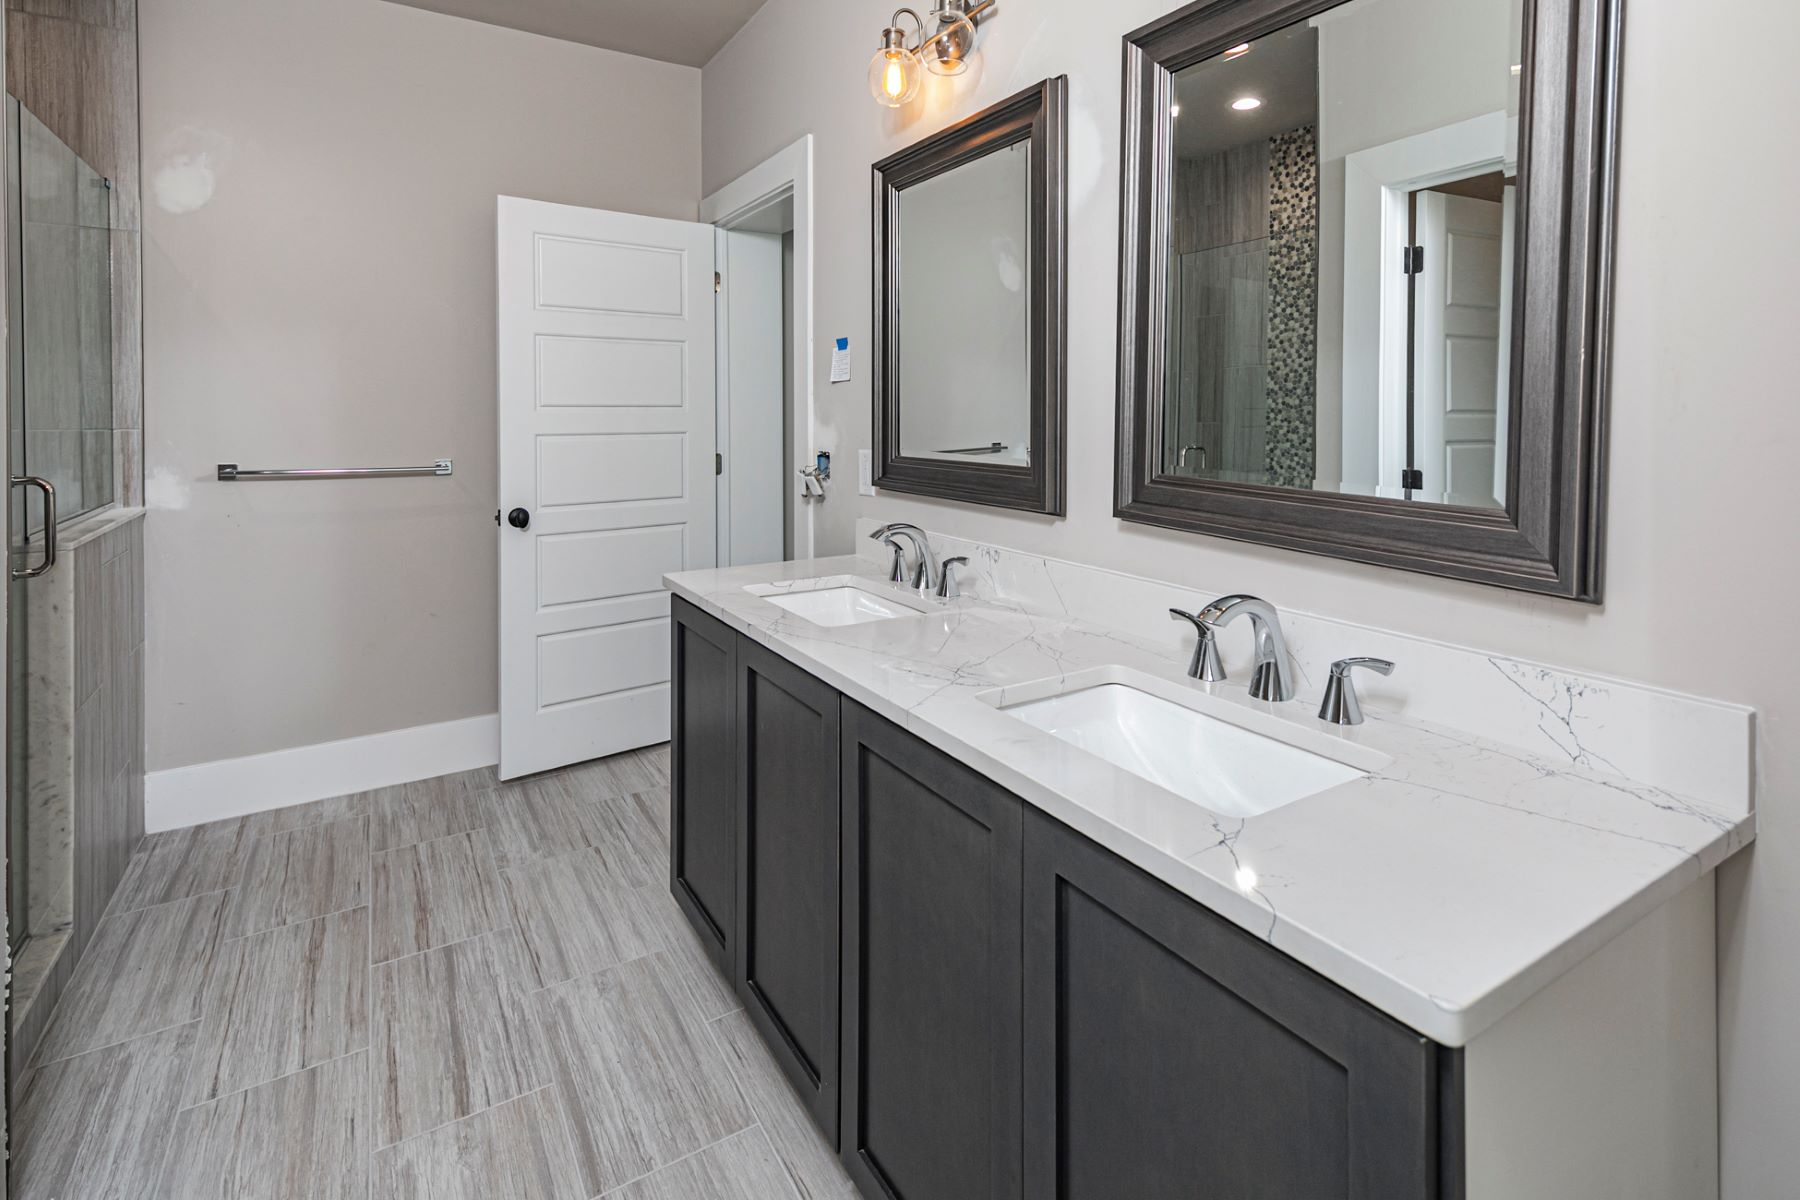 Additional photo for property listing at Bold, Artfully Designed Townhome in the Heart of Quaint Frenchtown 19 River Mills Drive, Frenchtown, New Jersey 08825 United States